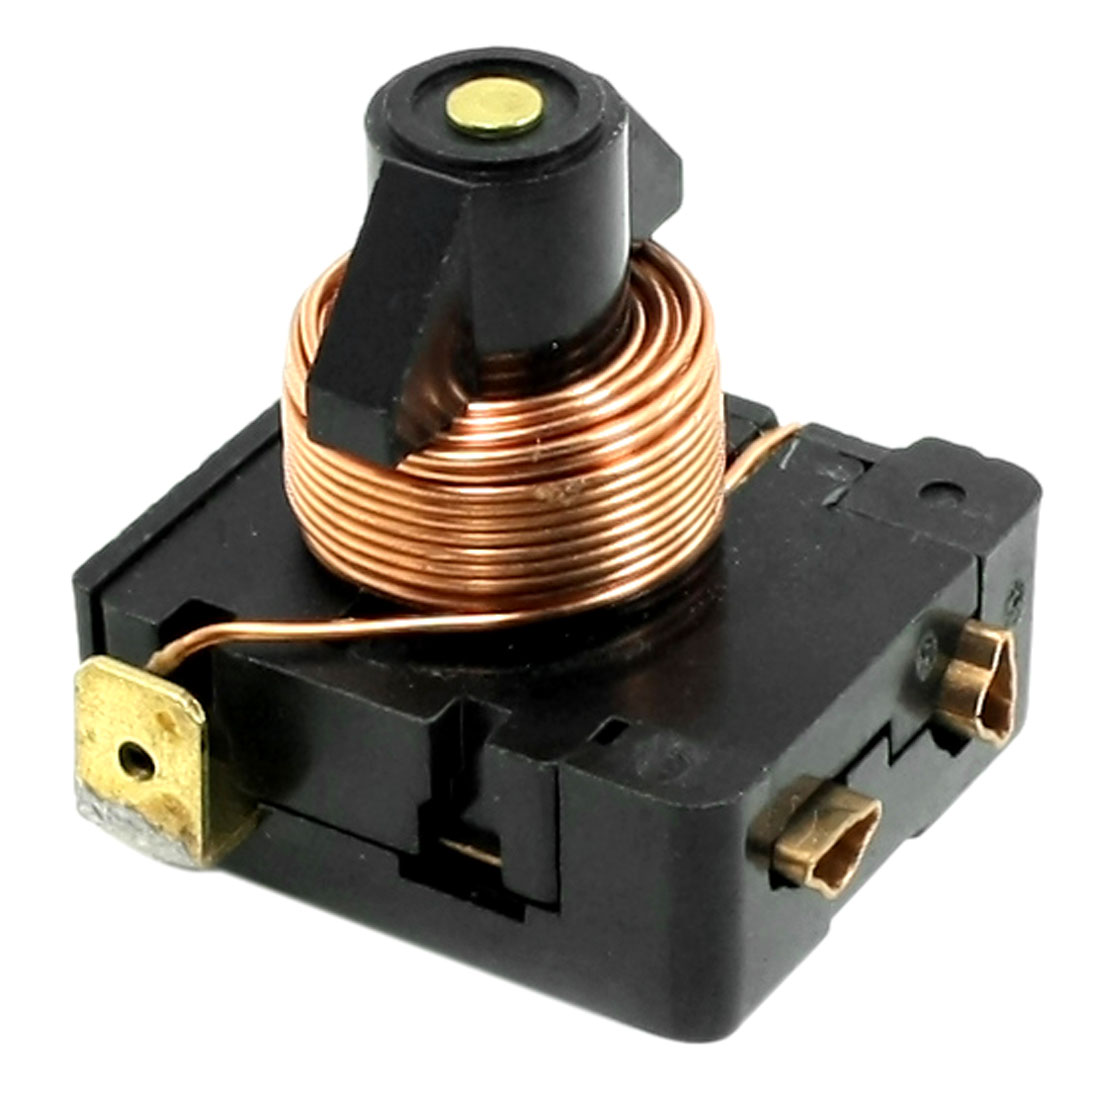 Black 1/6 PH Freezer Component Electromagnetic Compressor Starter Relay